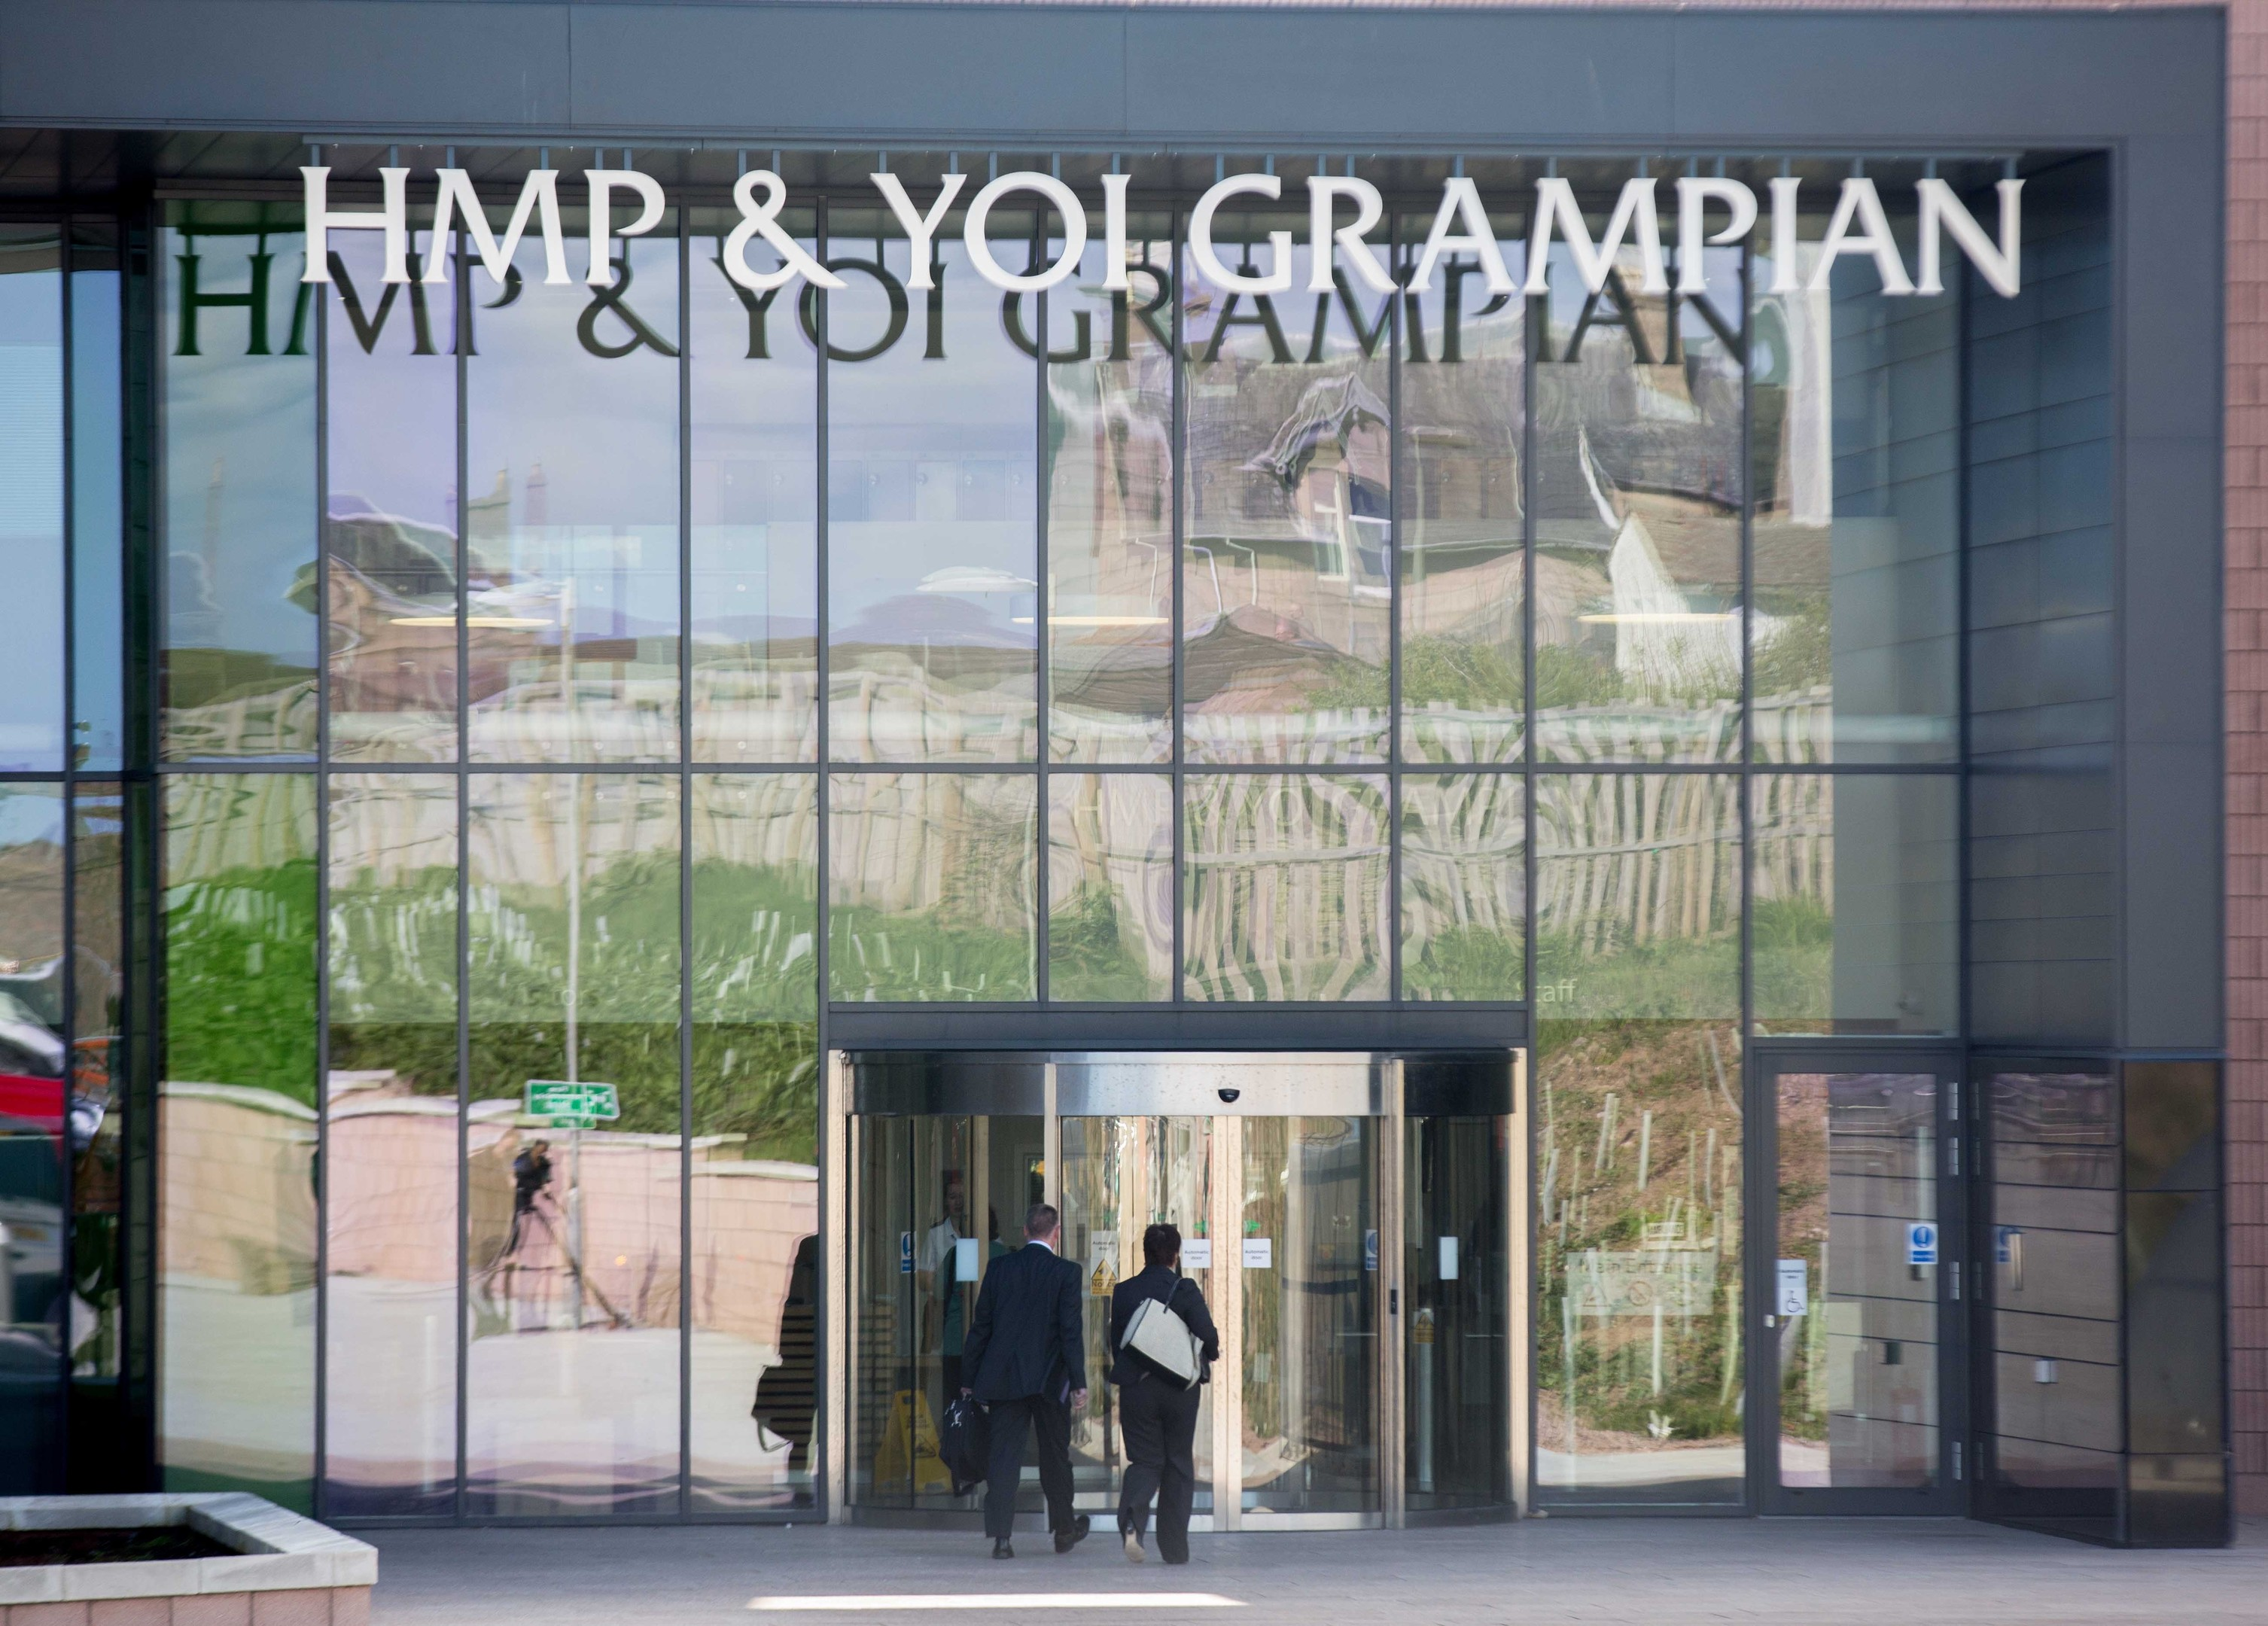 Substantial amounts of the drug were taken by police at HMP Grampian.